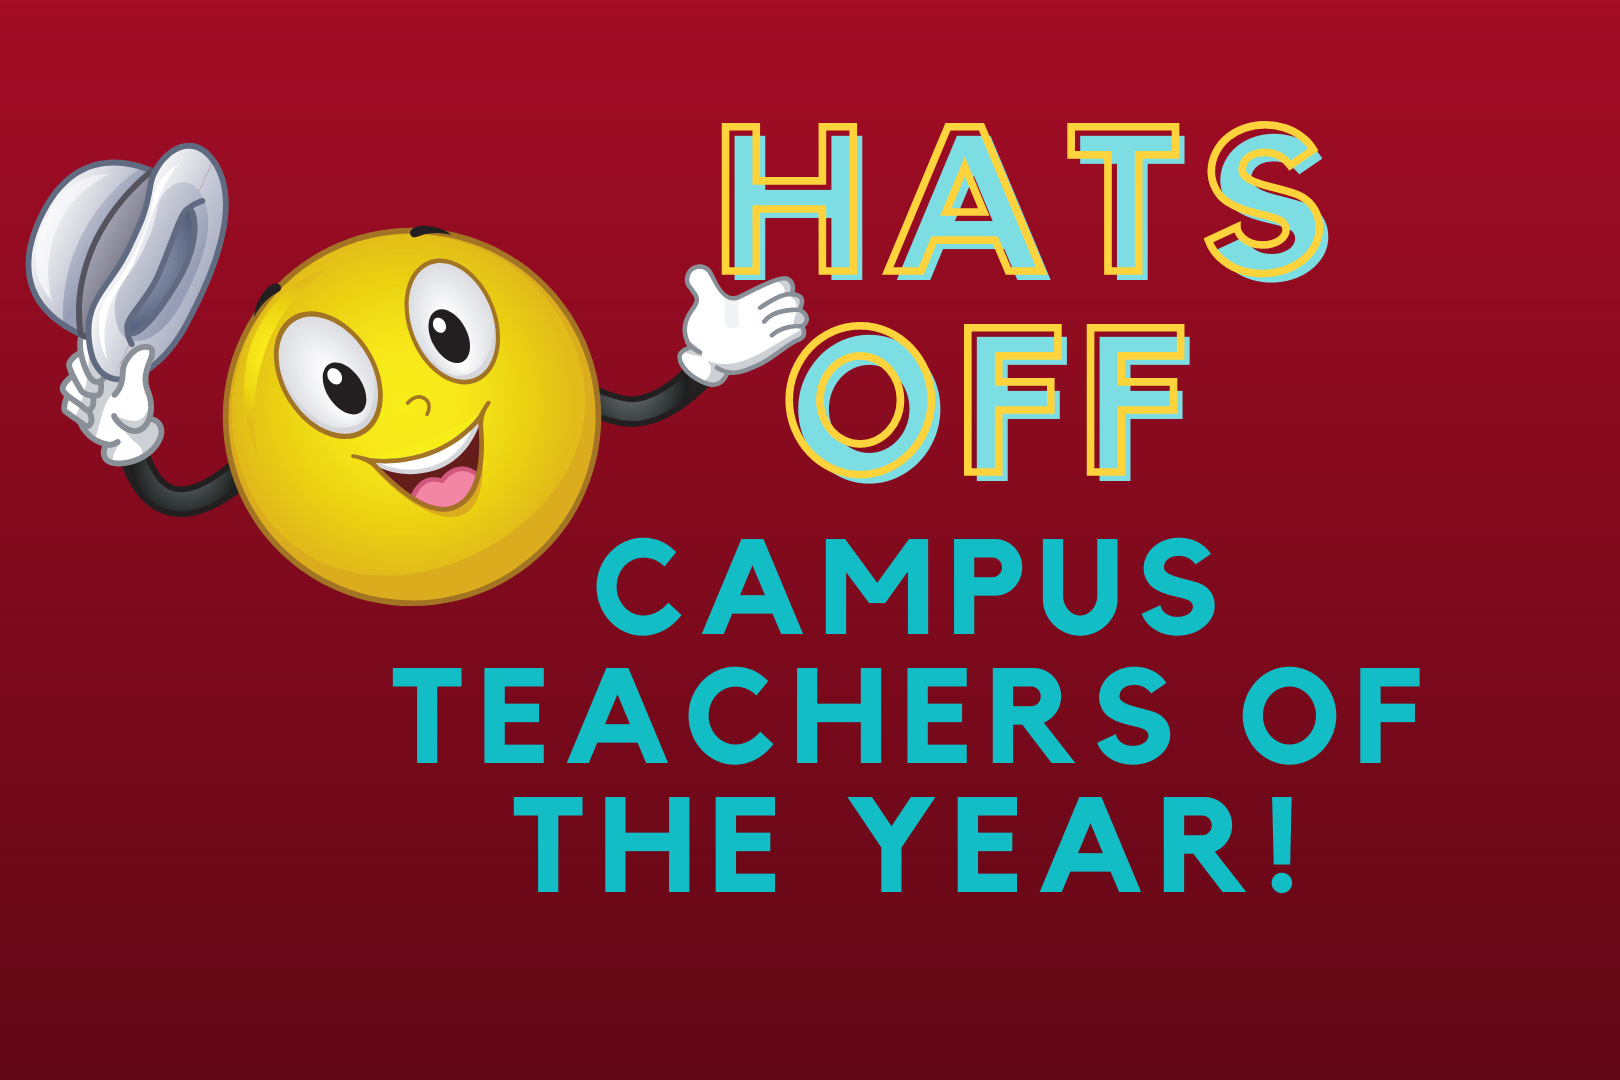 Hats off campus teachers of the year. yellow smiley face emoji with arms and a hat in hand above the head